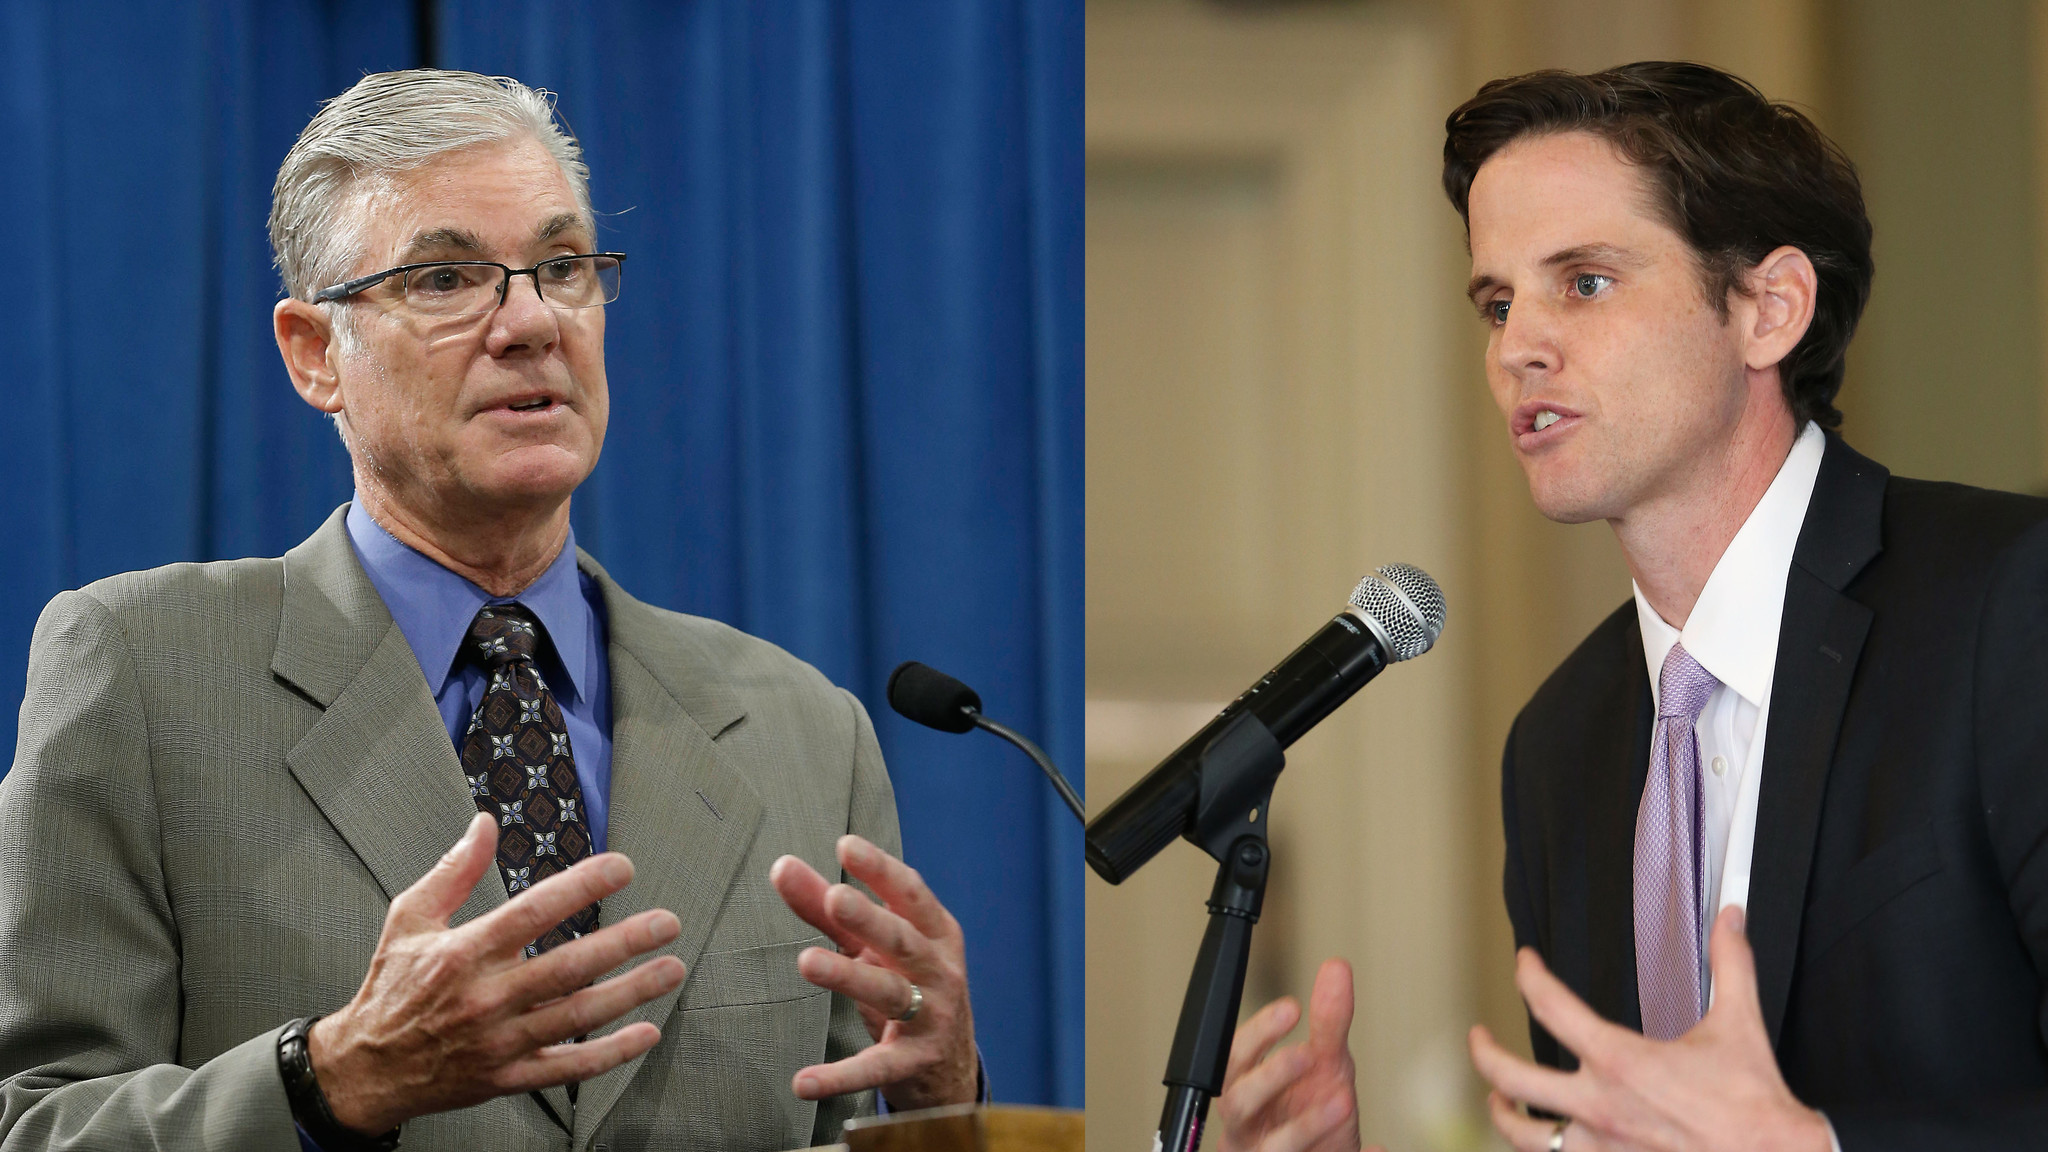 State schools chief race may reverberate beyond California